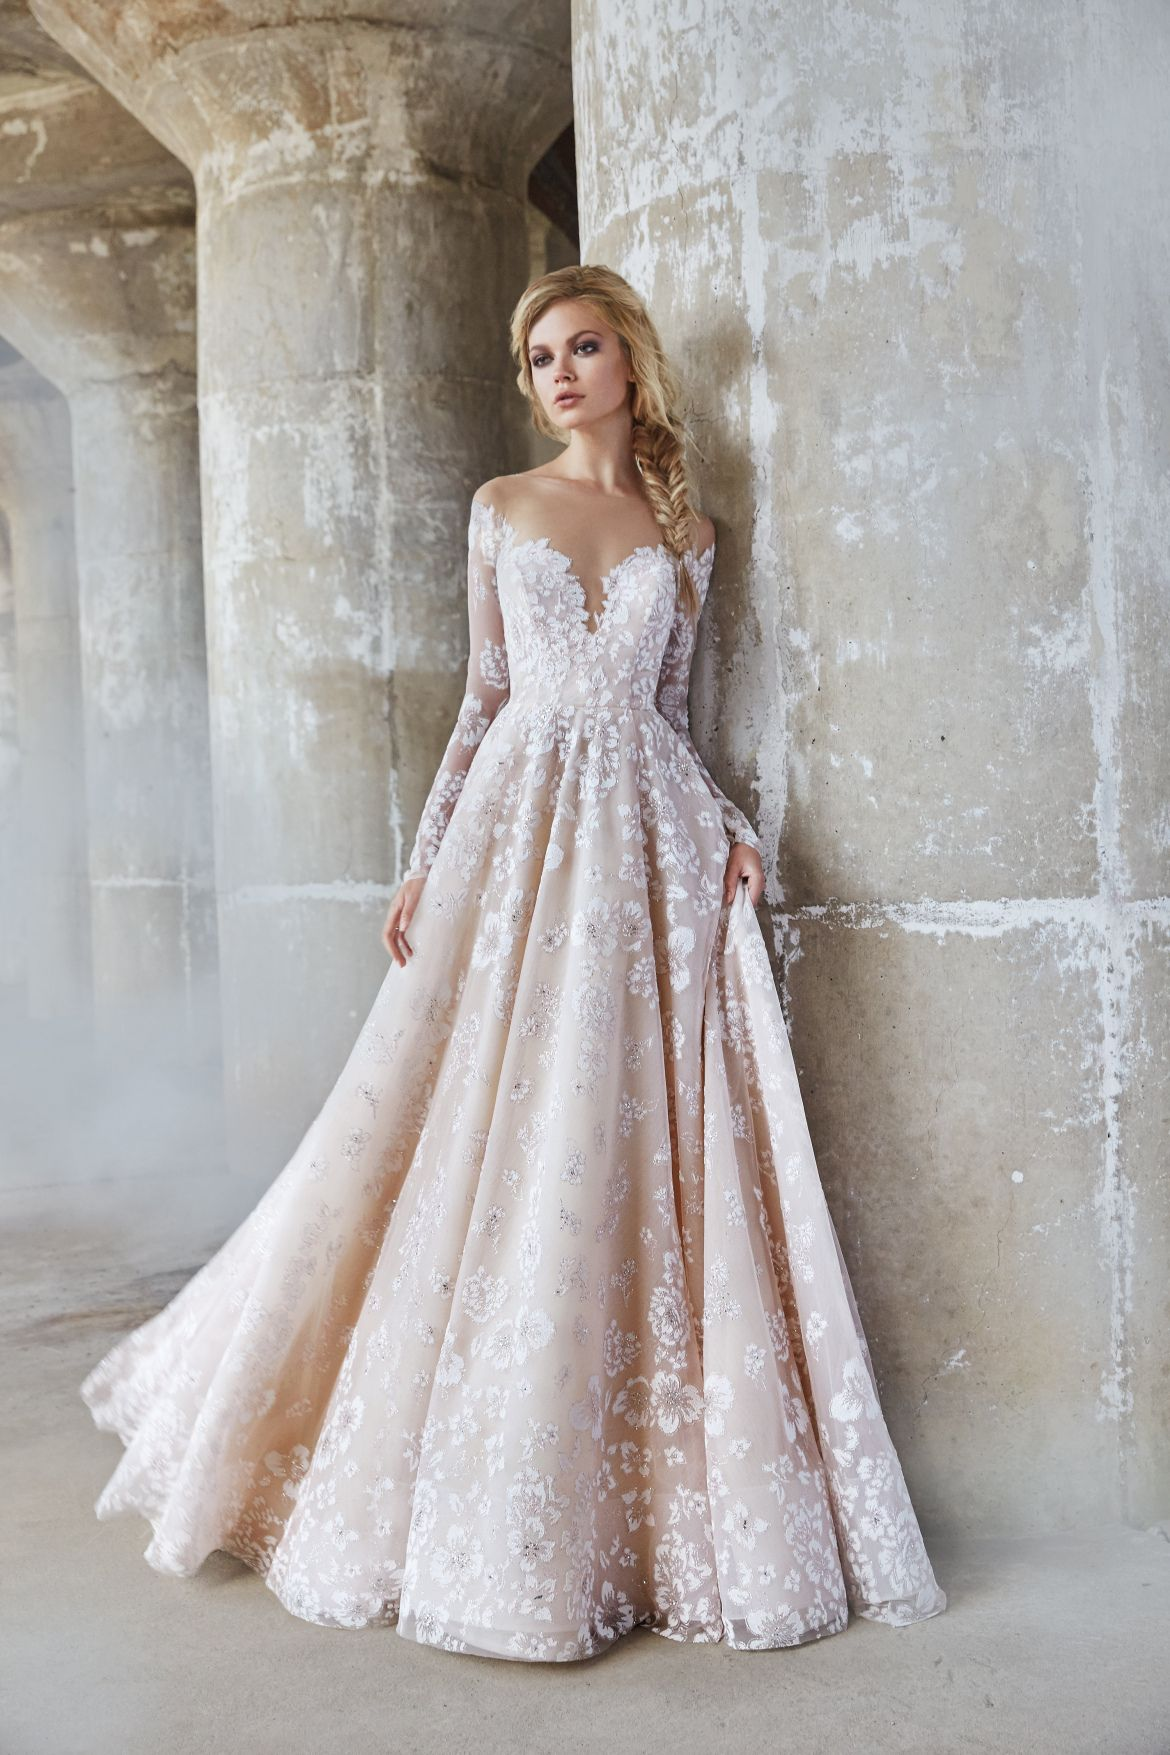 77 hayley paige wedding dresses prices wedding dresses for plus 77 hayley paige wedding dresses prices wedding dresses for plus size check more at httpsvestyhayley paige wedding dresses prices junglespirit Choice Image